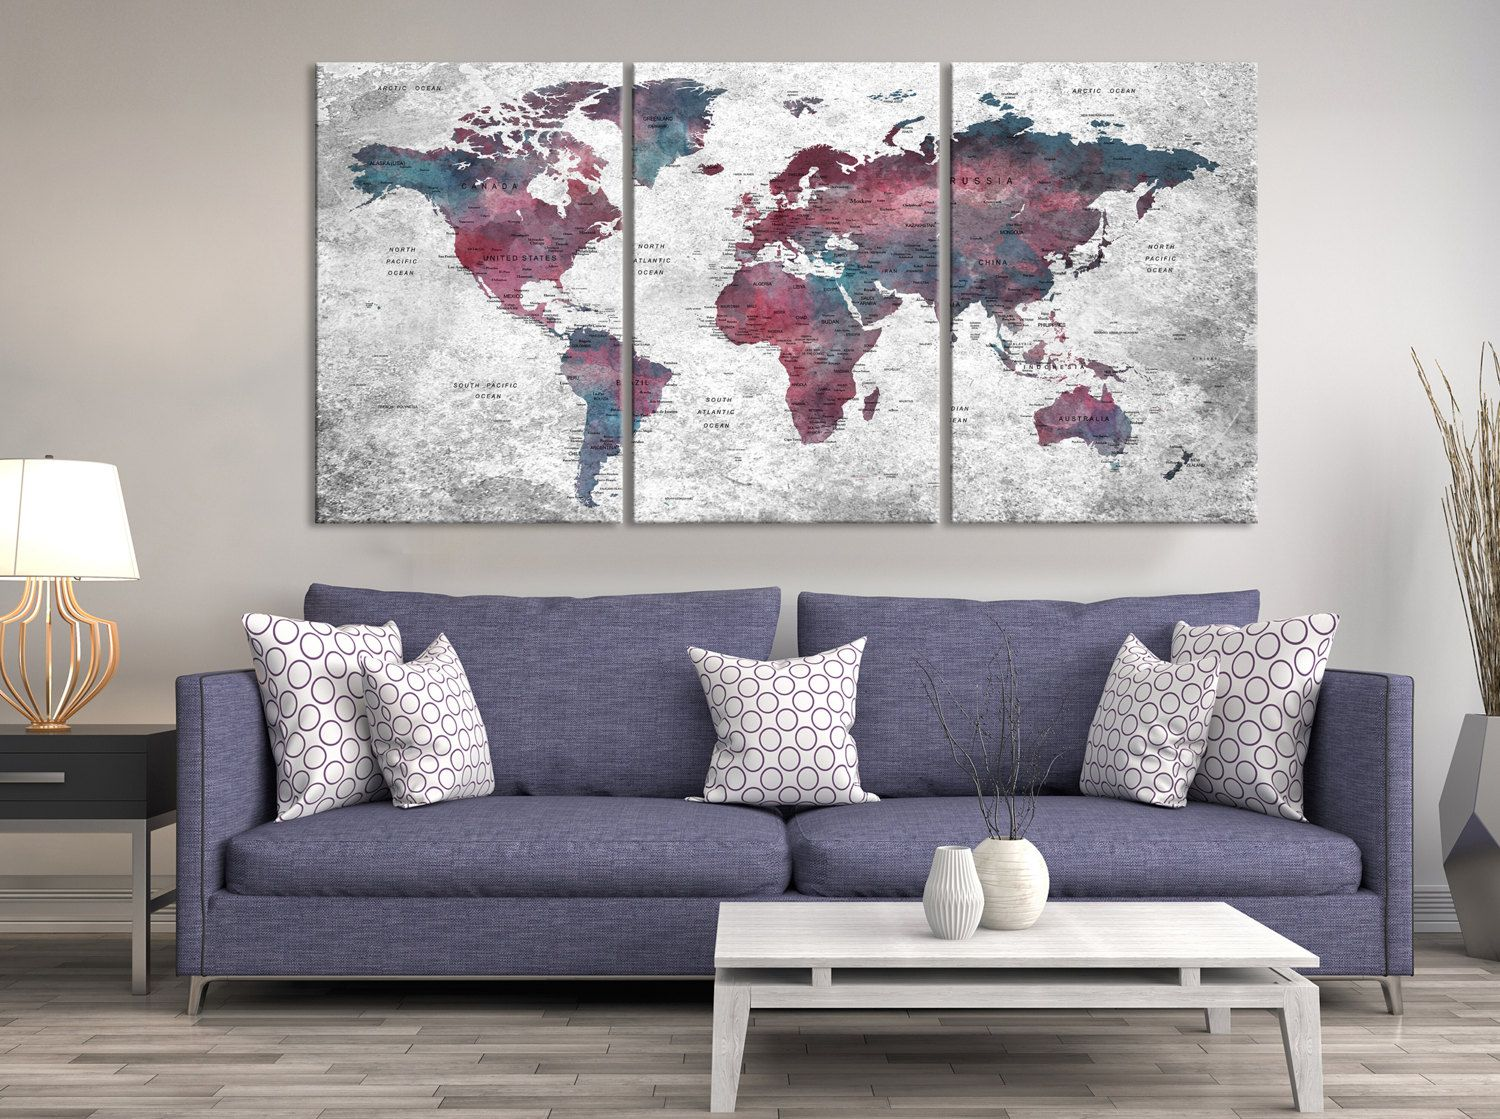 Watercolor push pin world map canvas print triptych wall art watercolor push pin world map canvas print triptych wall art watercolor world map canvas print gumiabroncs Gallery